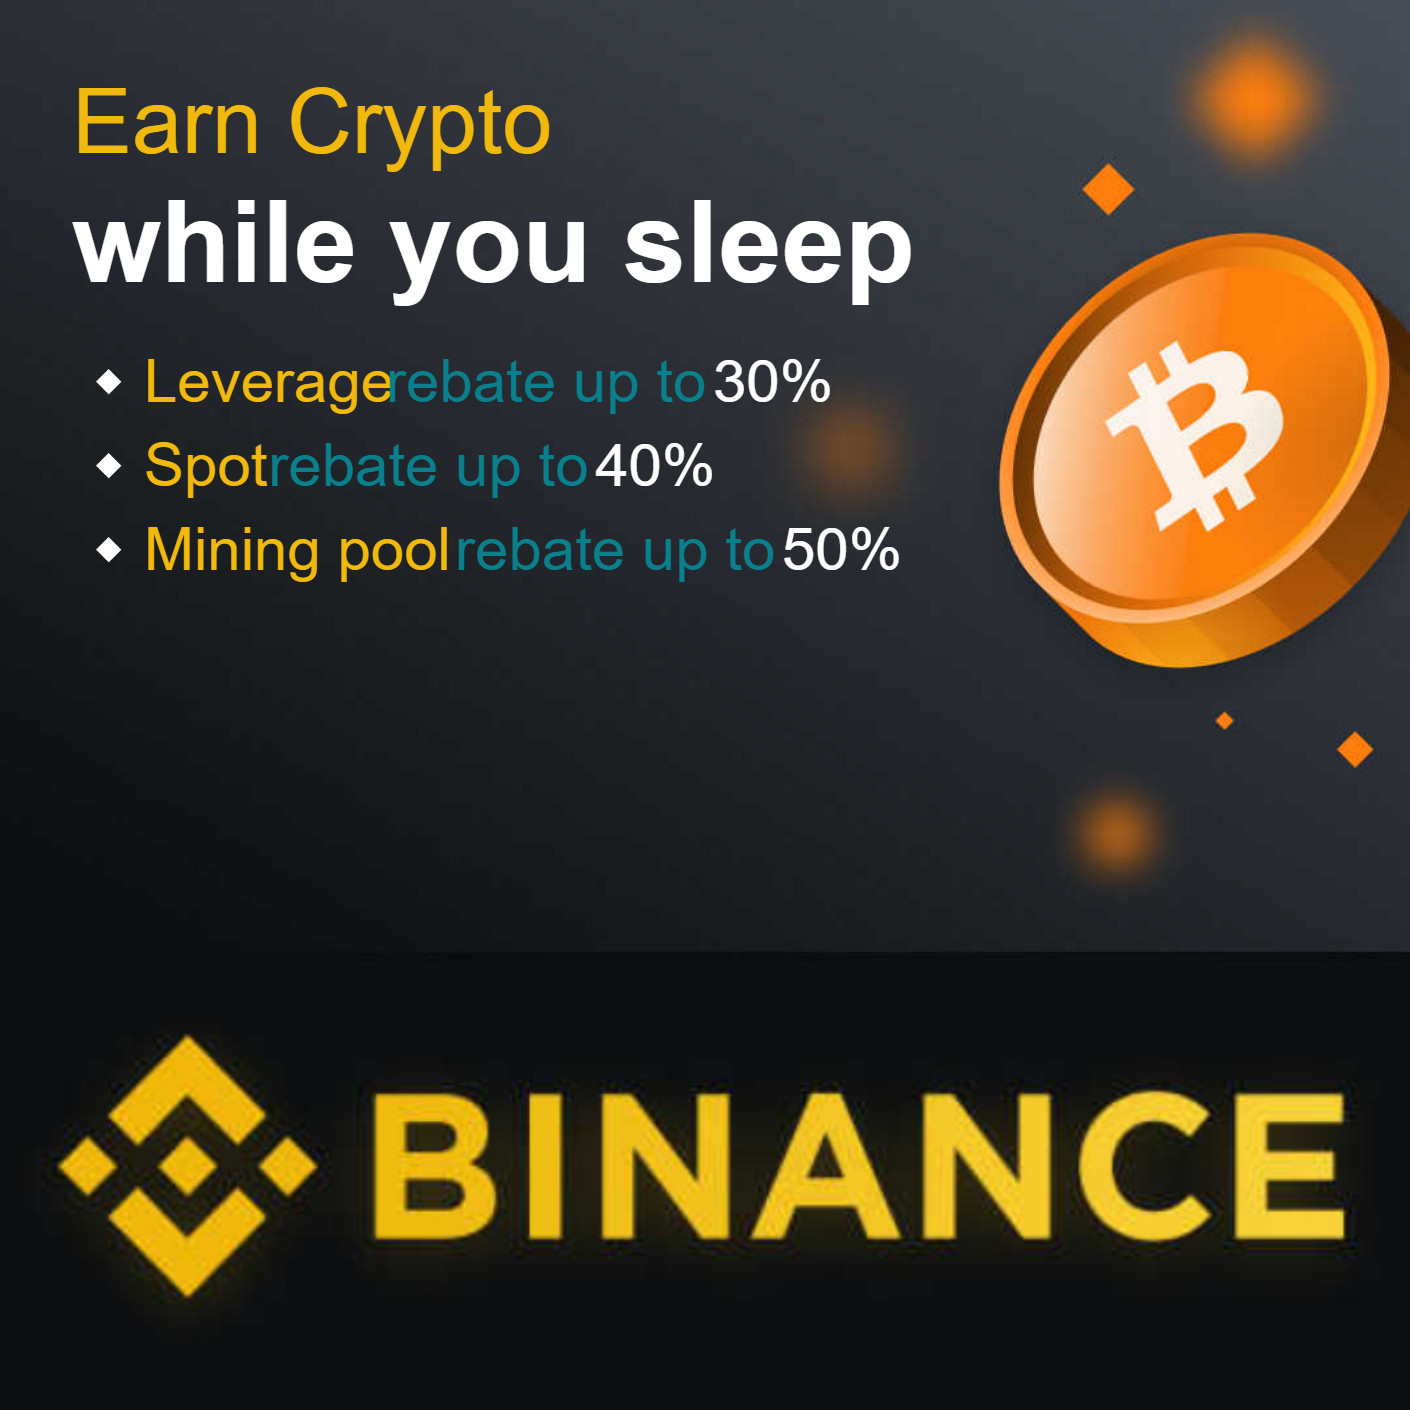 Binance earn money with bitcoin